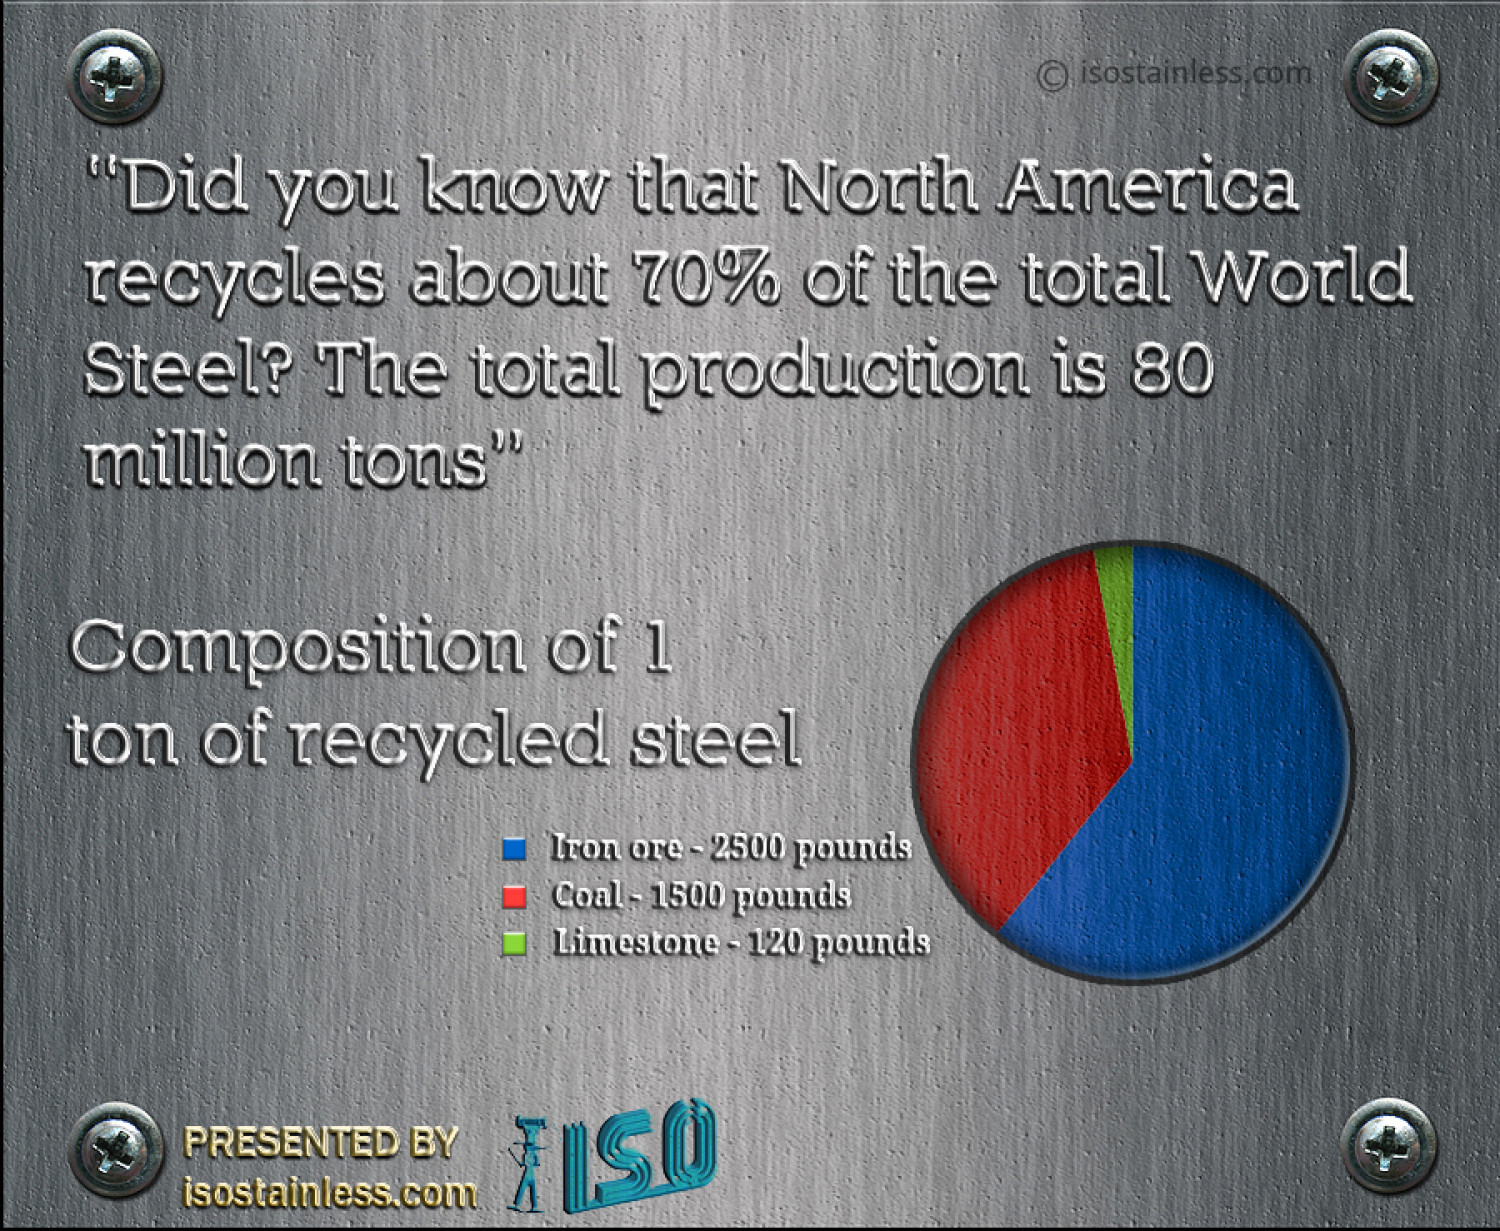 Stainless Steel Recycling Facts - Did You Know? Infographic